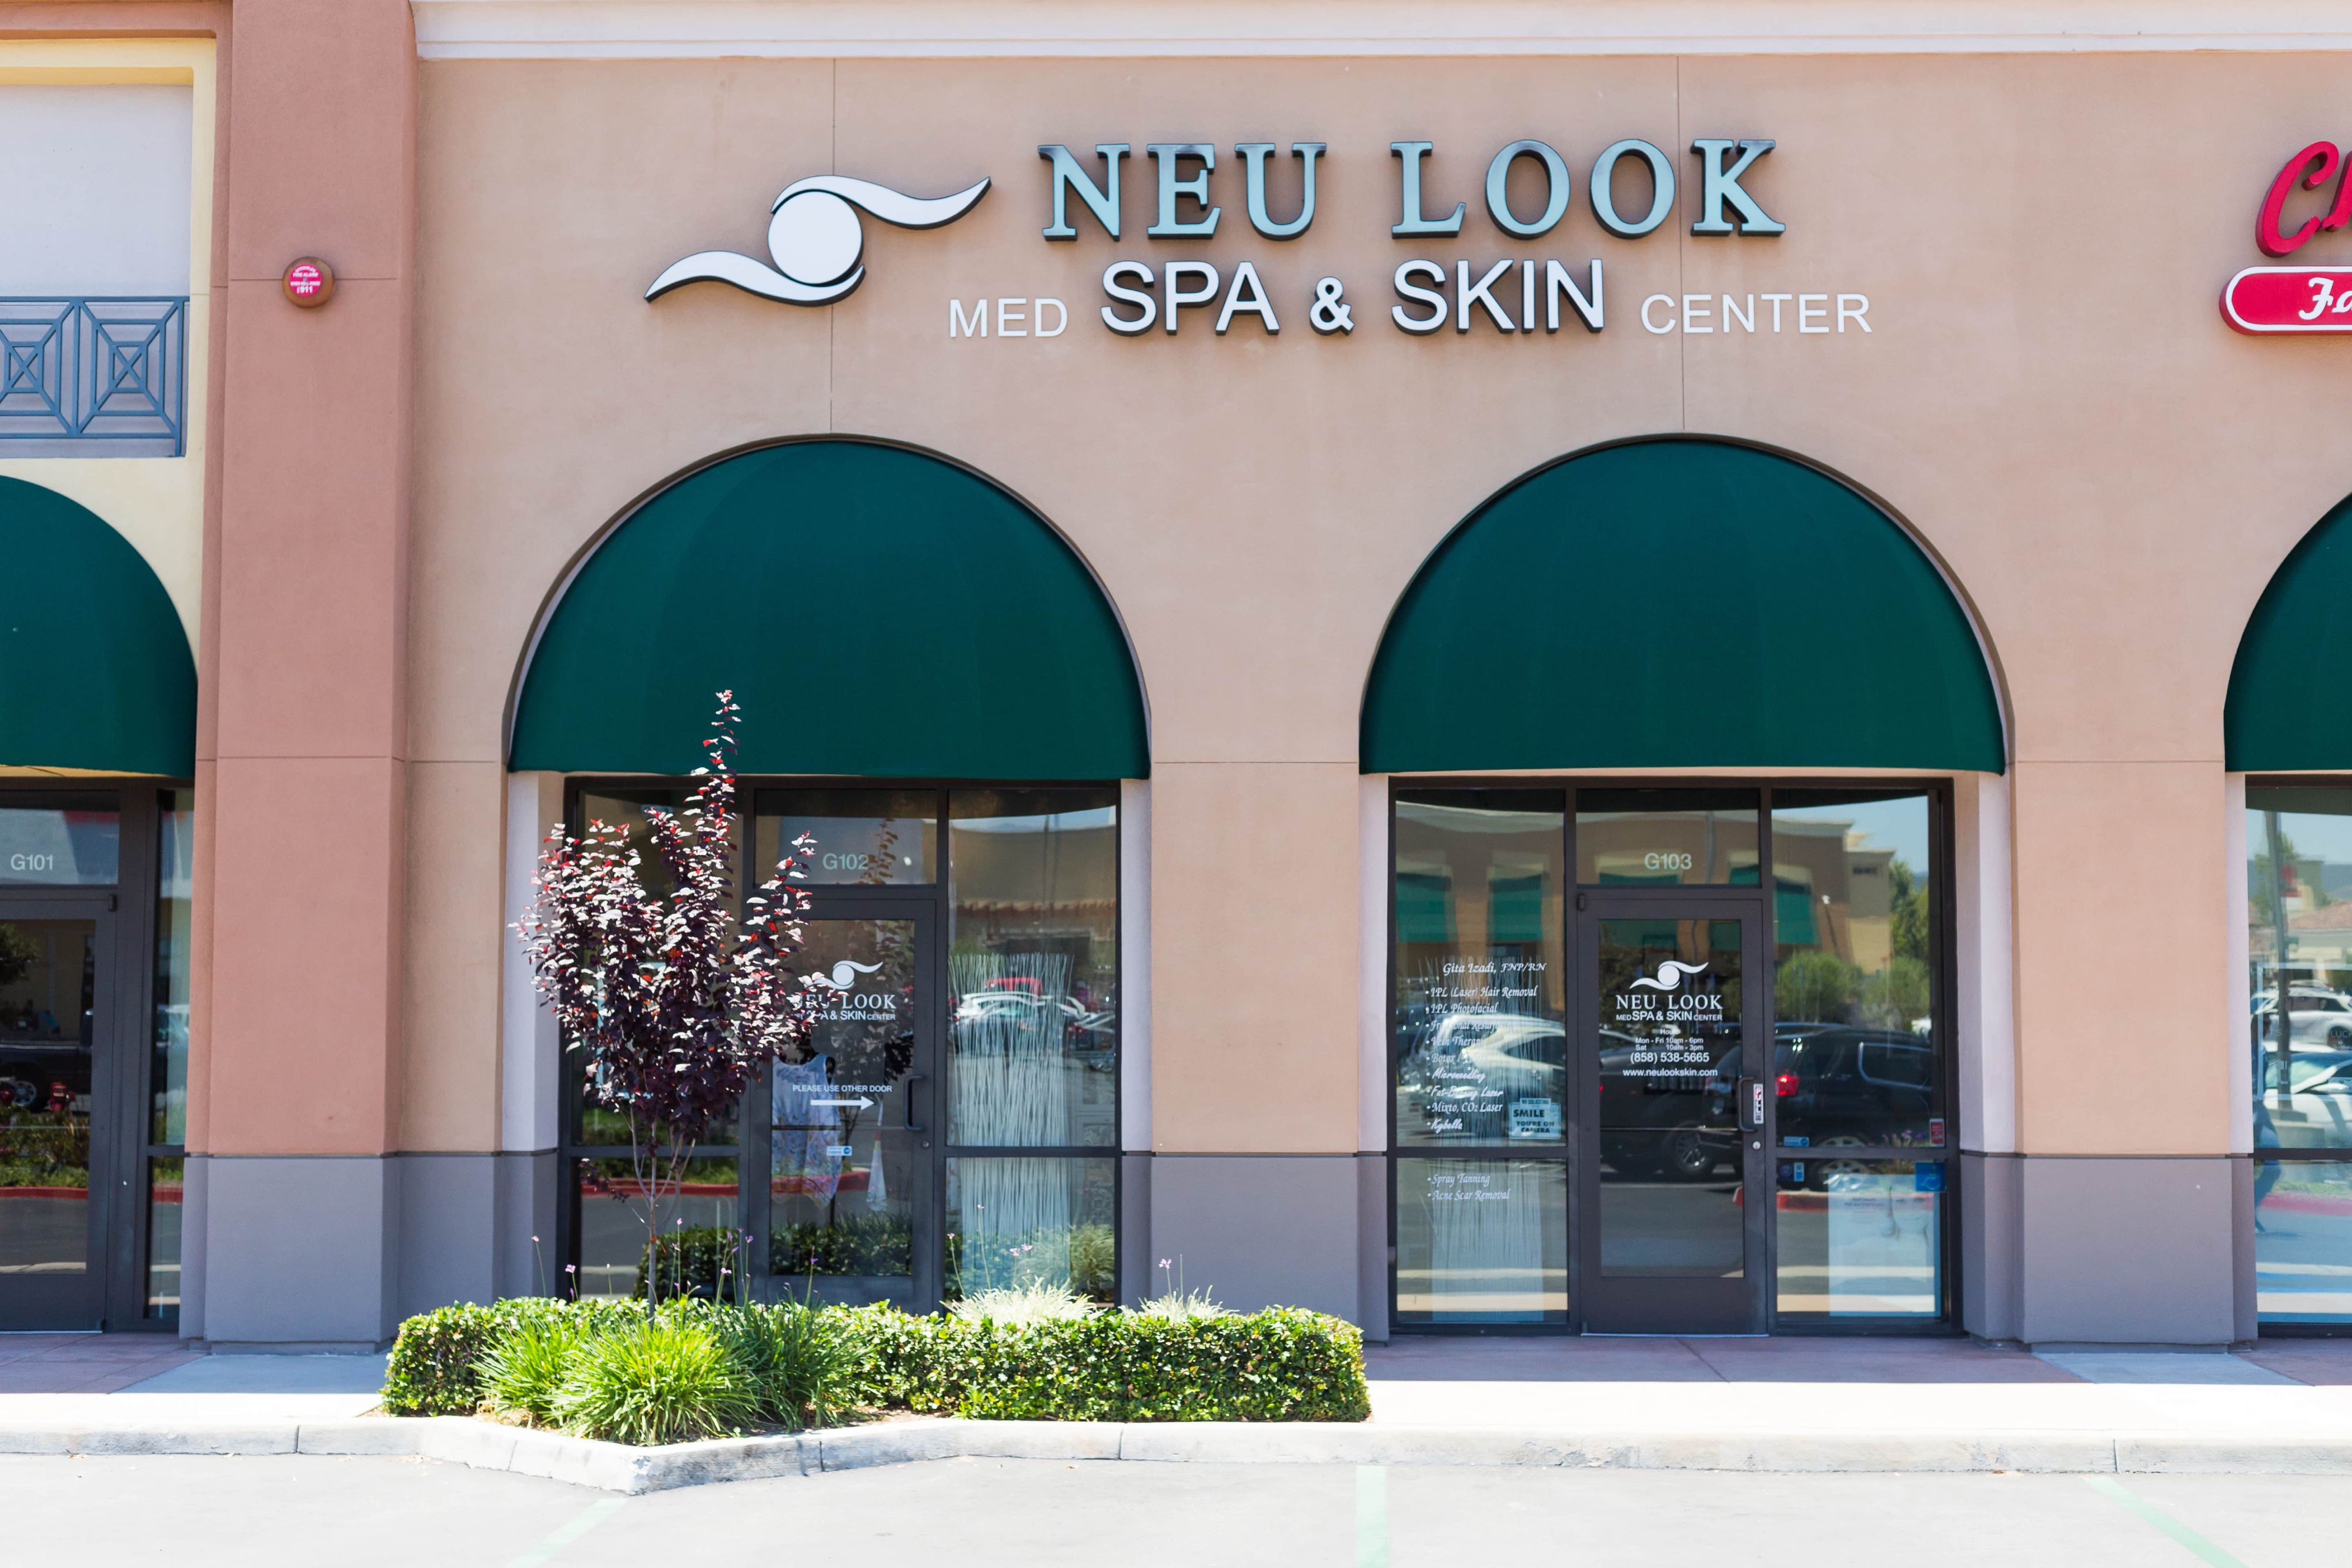 Neu Look Med Spa and Skin Center building